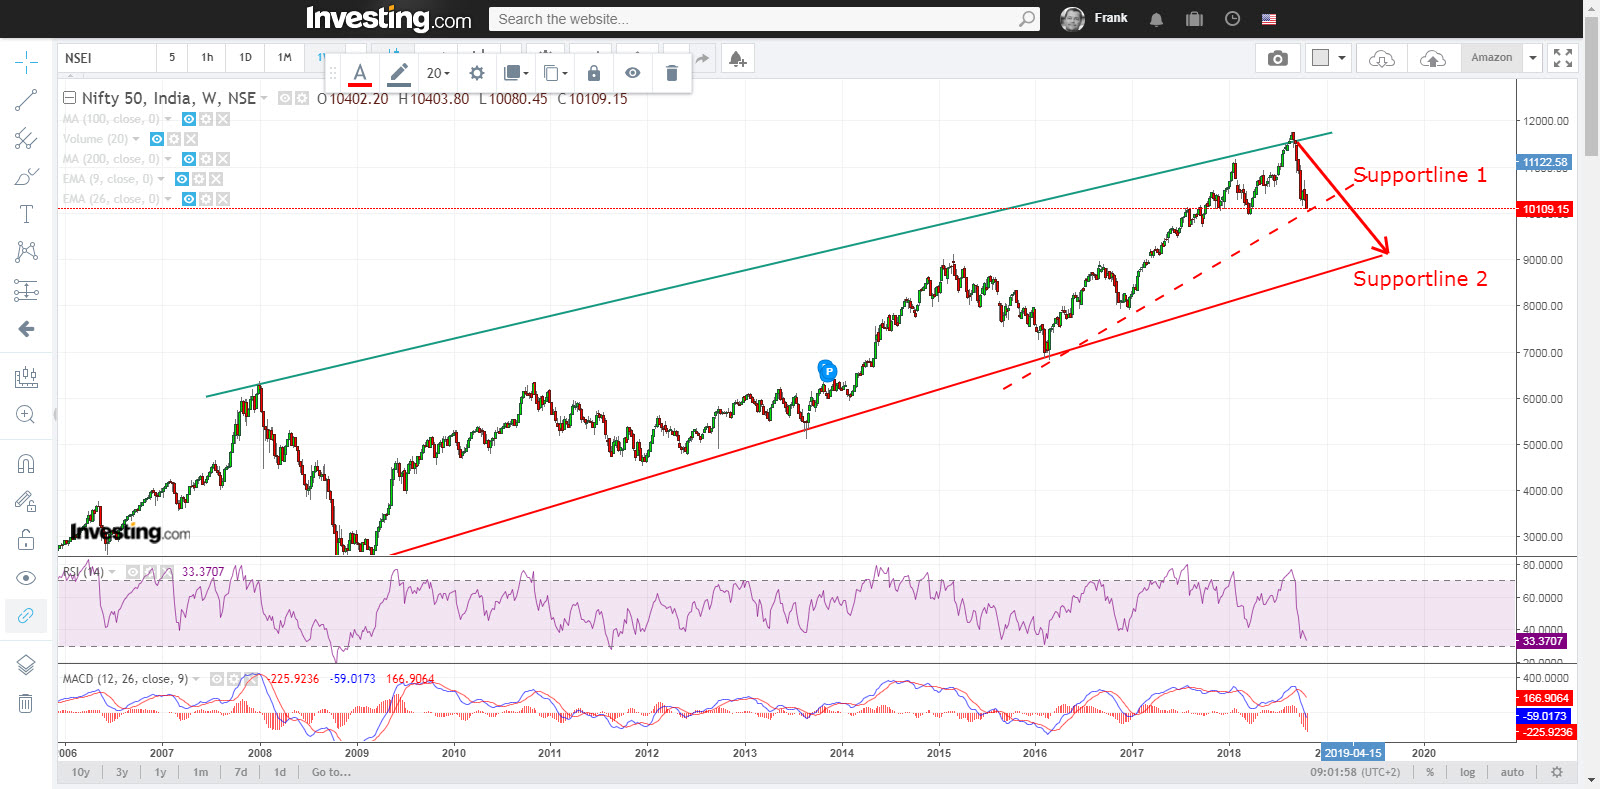 Nifty50 testing support line again